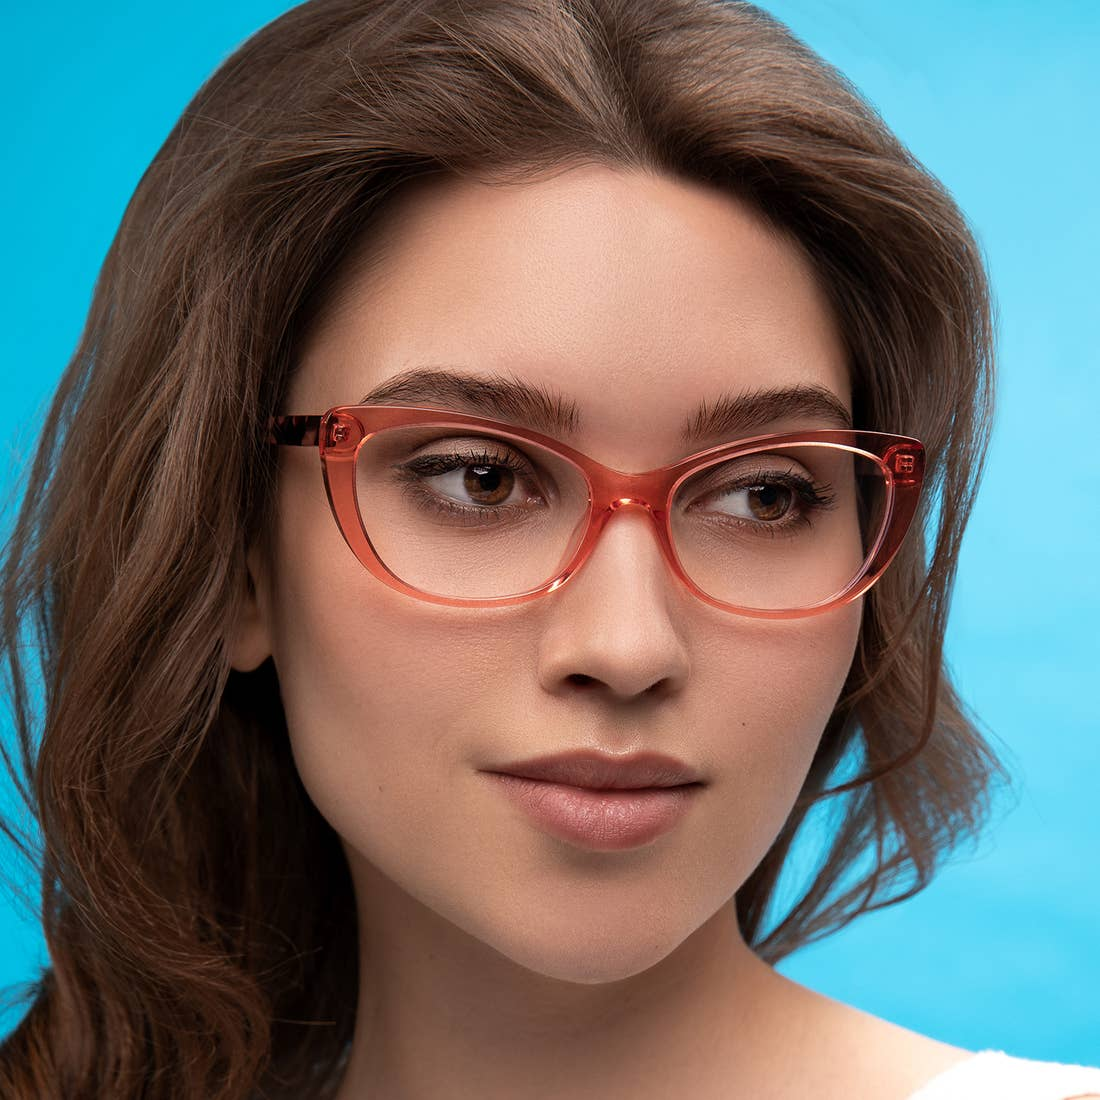 Freyrs Lucy Premium Blue Light Blocking Glasses Accessories - Sophie